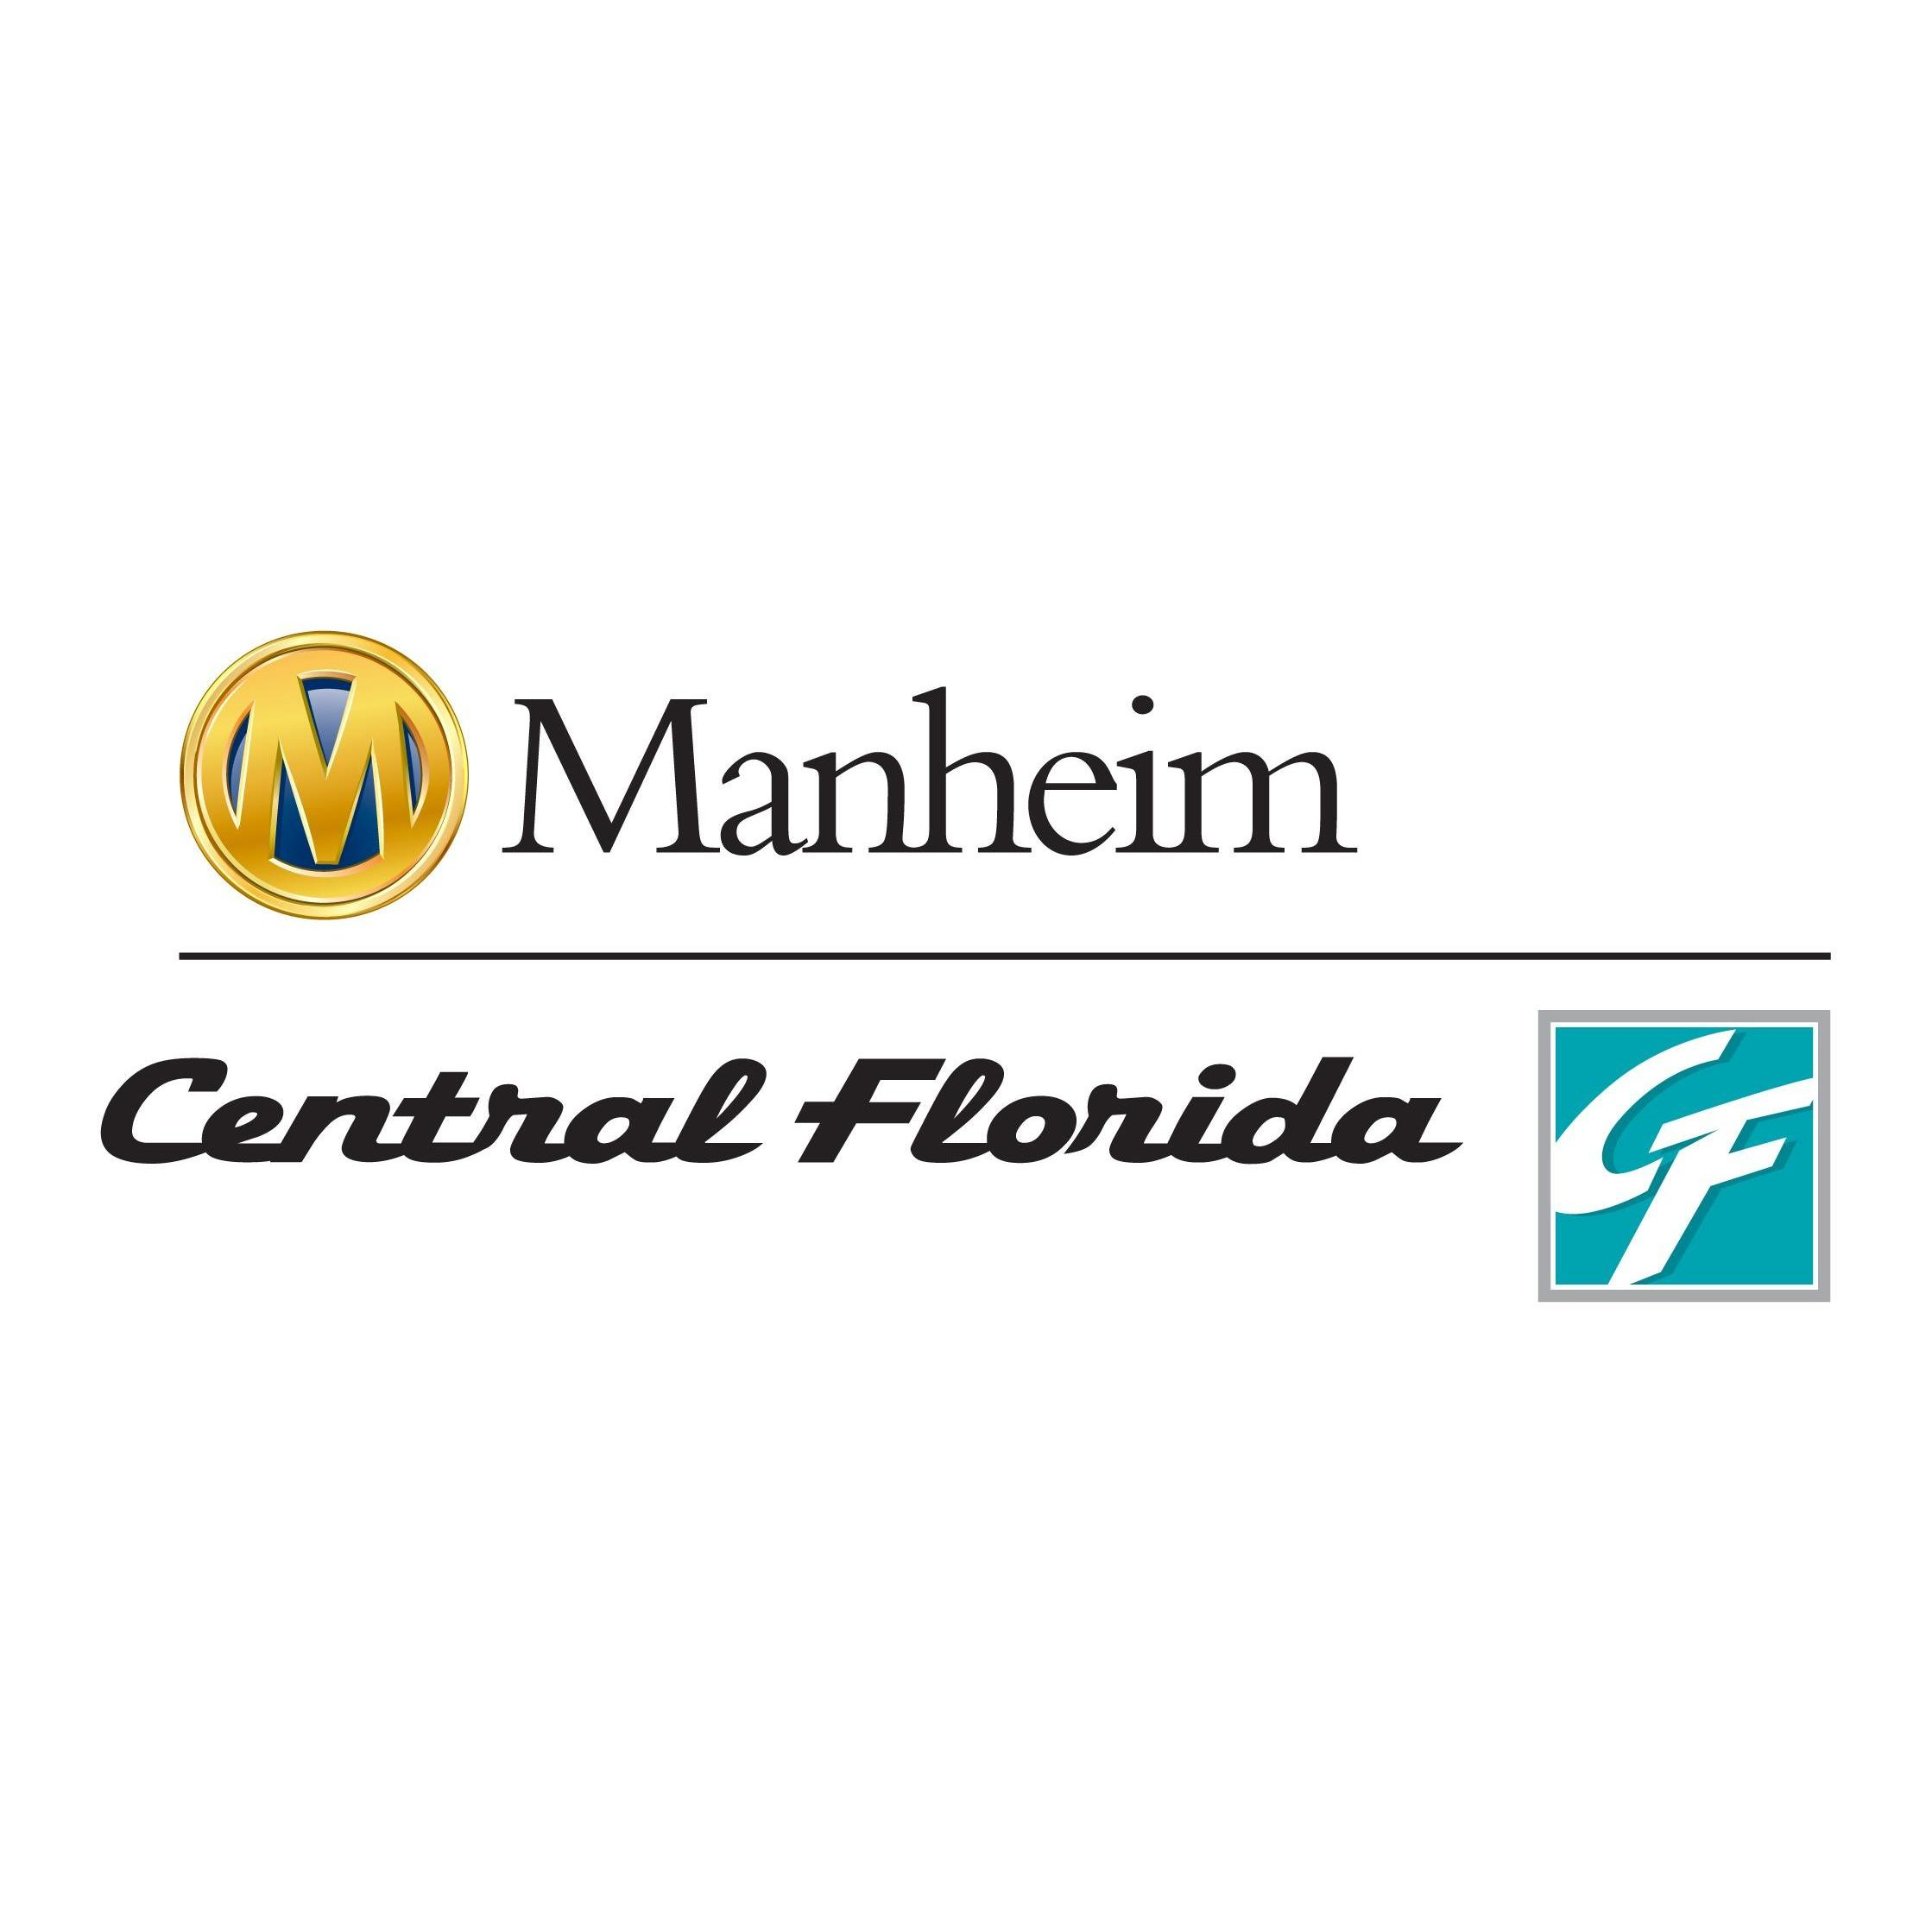 Manheim Central Florida